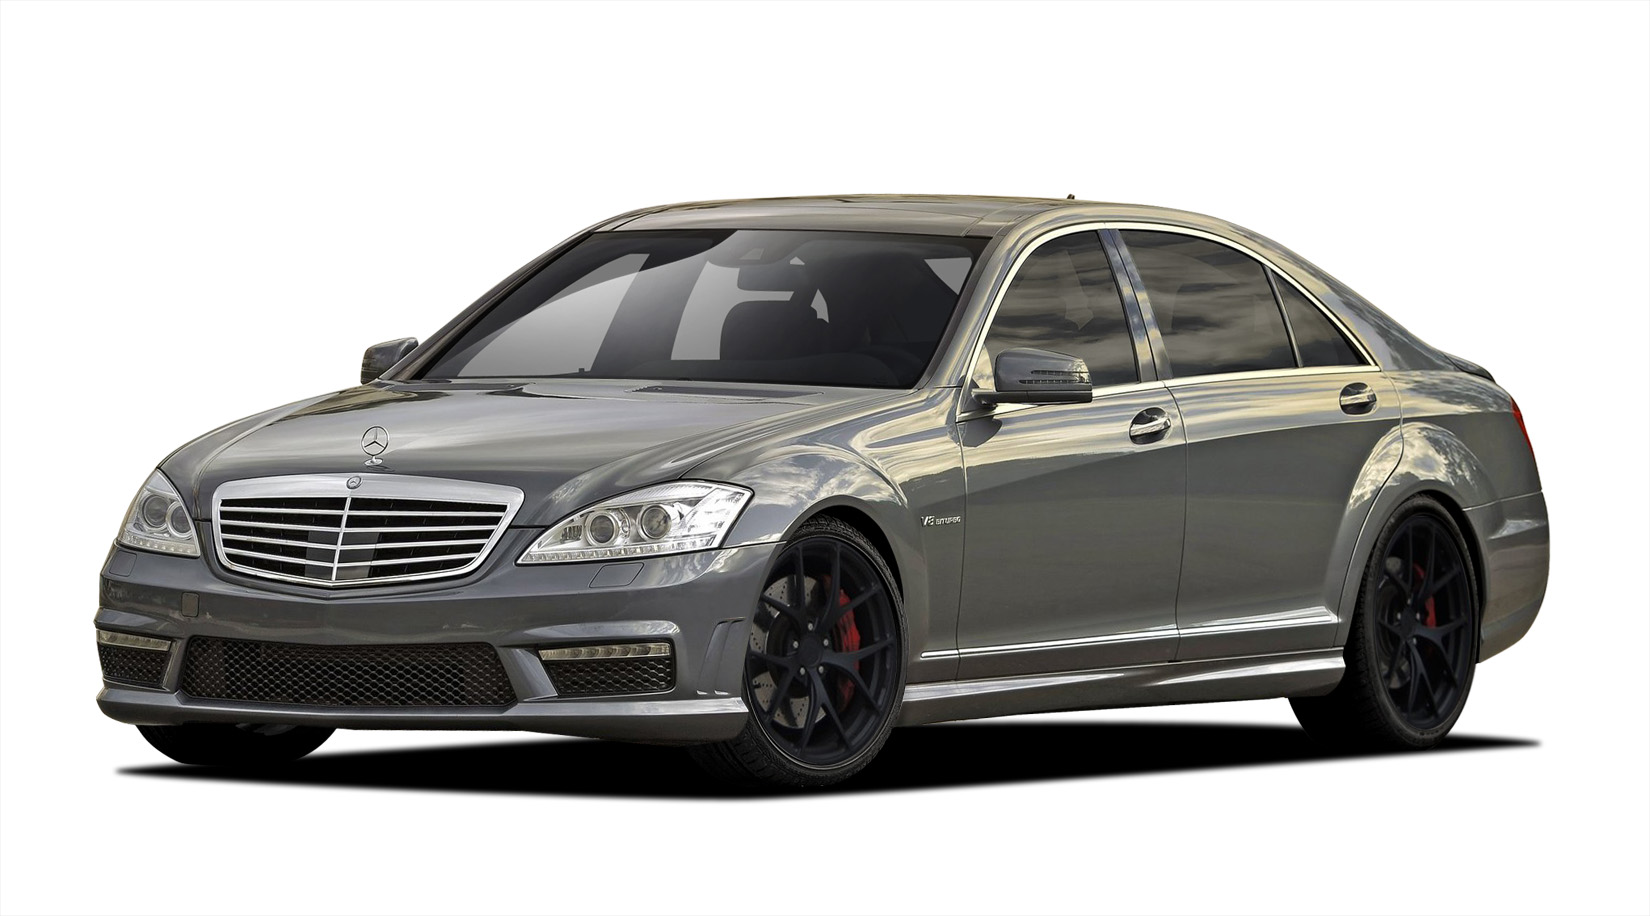 2010 2013 mercedes s class w221 vaero s63 look kit. Black Bedroom Furniture Sets. Home Design Ideas